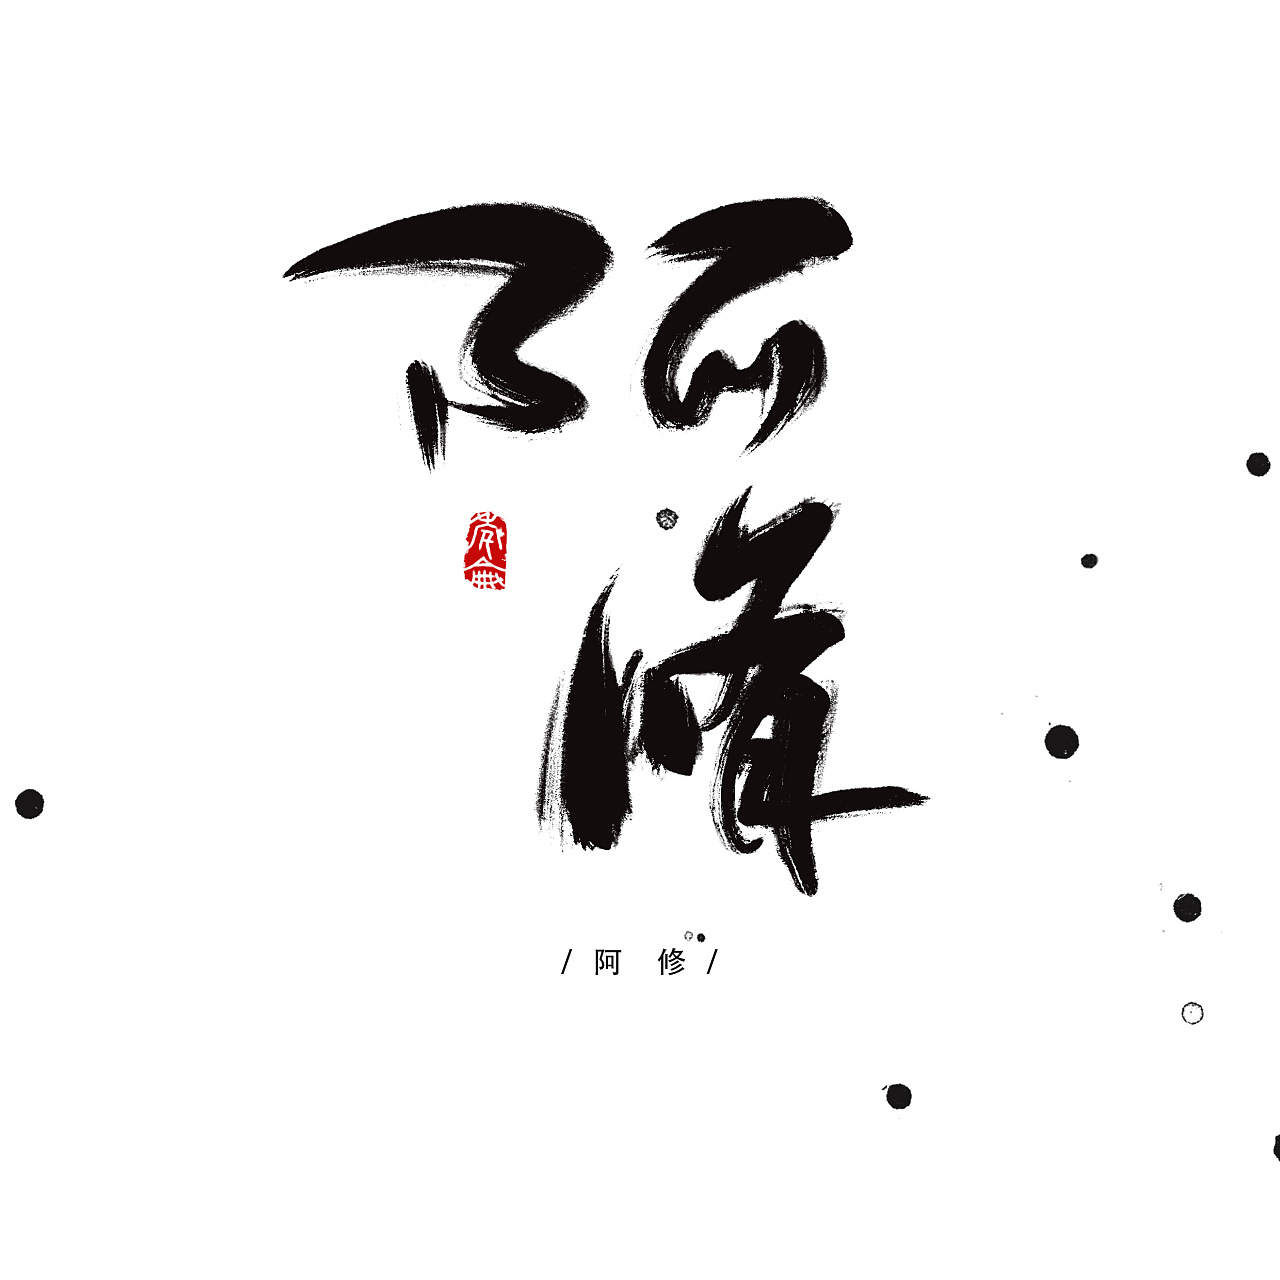 chinesefontdesign.com 2017 09 12 05 58 35 777594 16P Chinese traditional calligraphy brush calligraphy style appreciation #.21